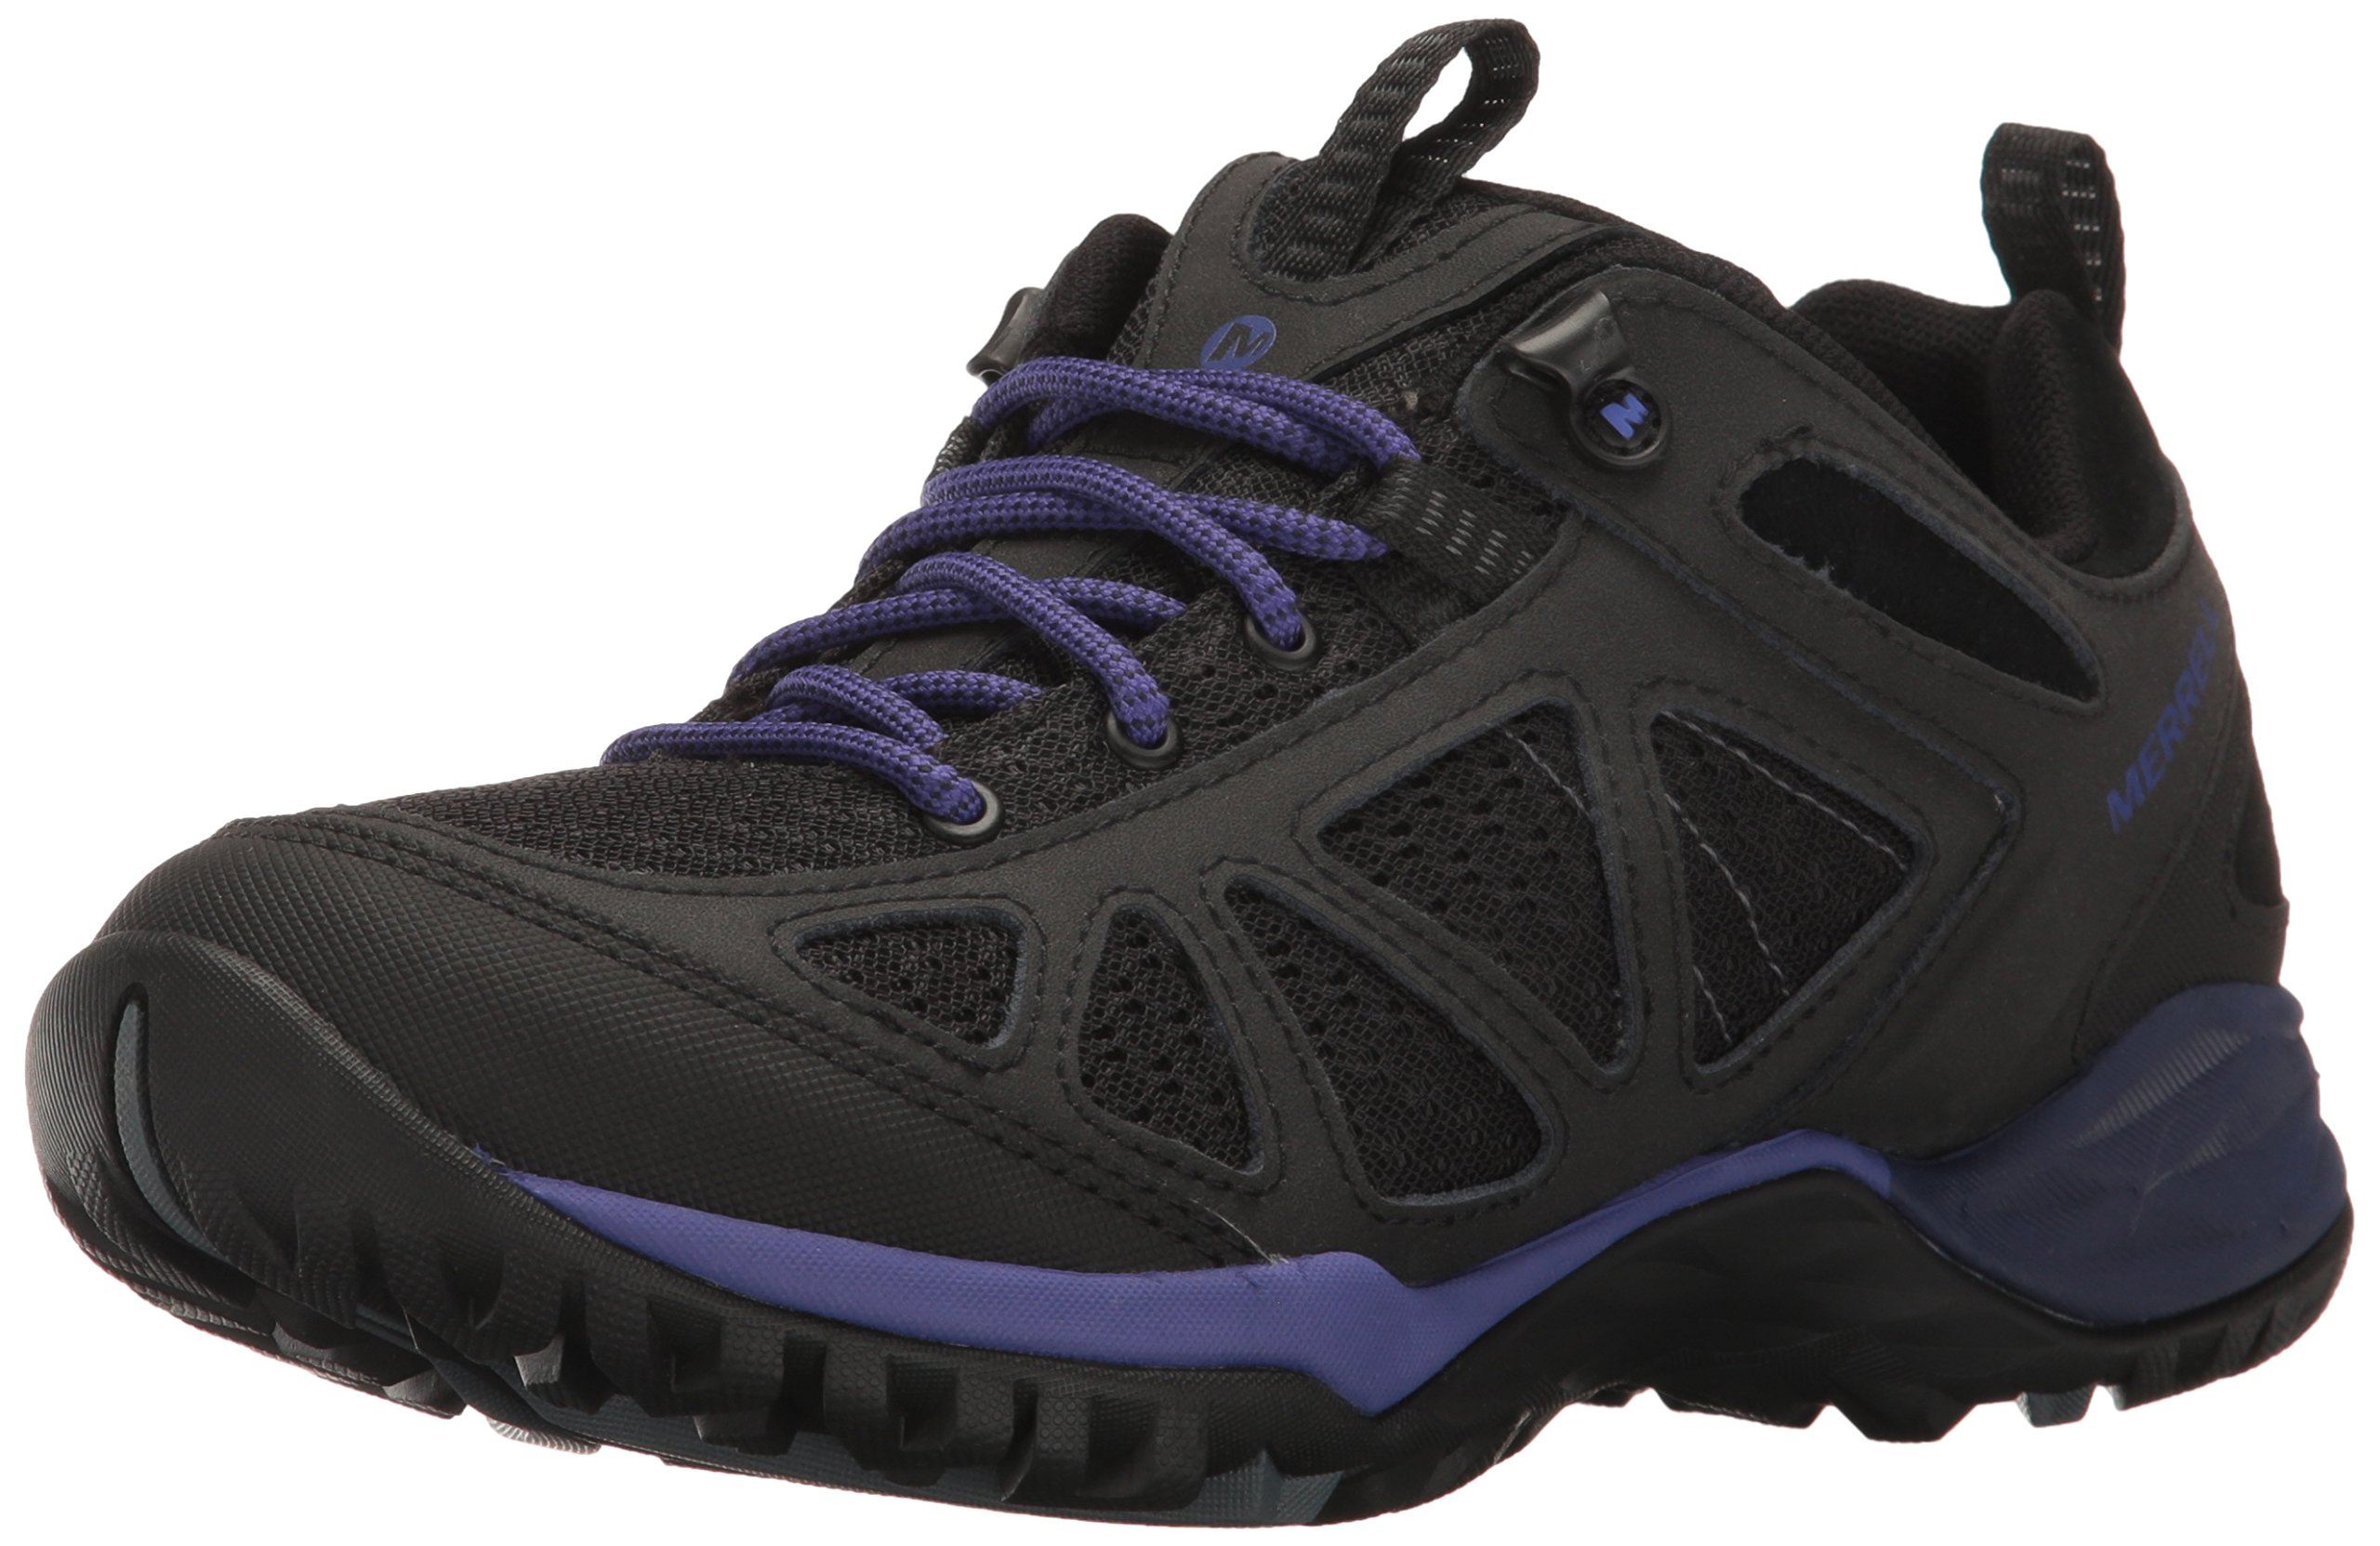 Merrell Women's Siren Sport Q2 Hiking Shoe, Black/Liberty, 11 M US